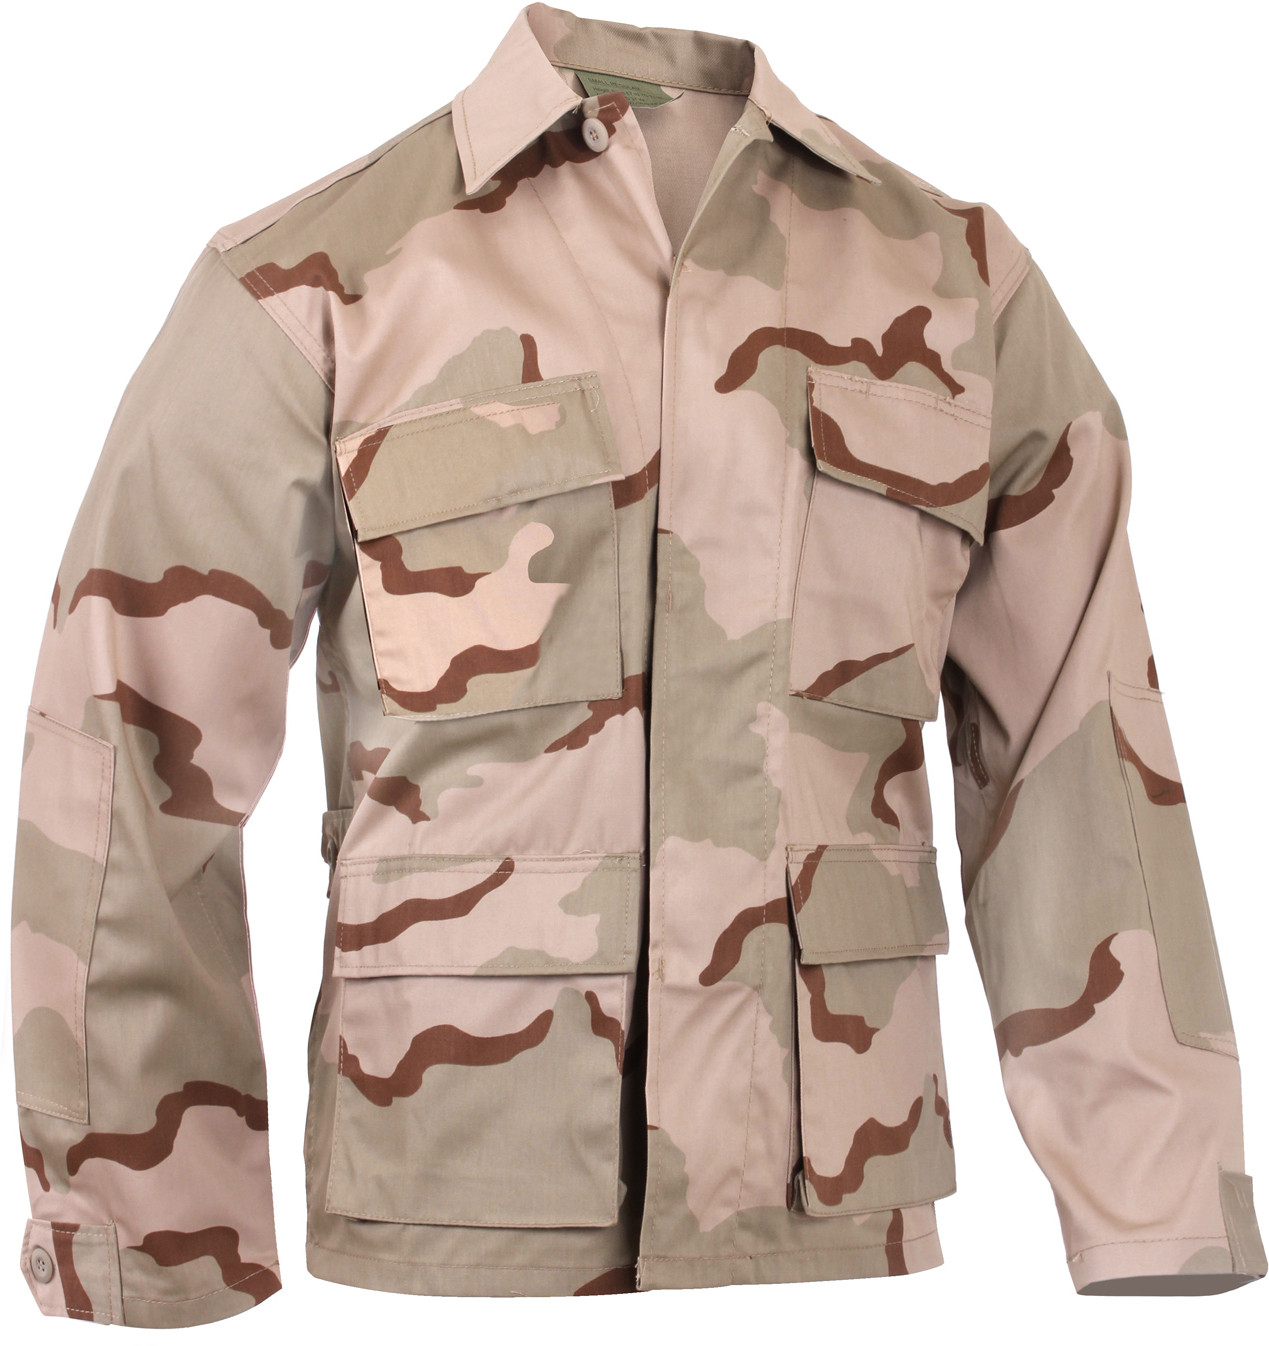 Tri-Color Desert Camouflage Military BDU Fatigue Shirt 8b93effff3